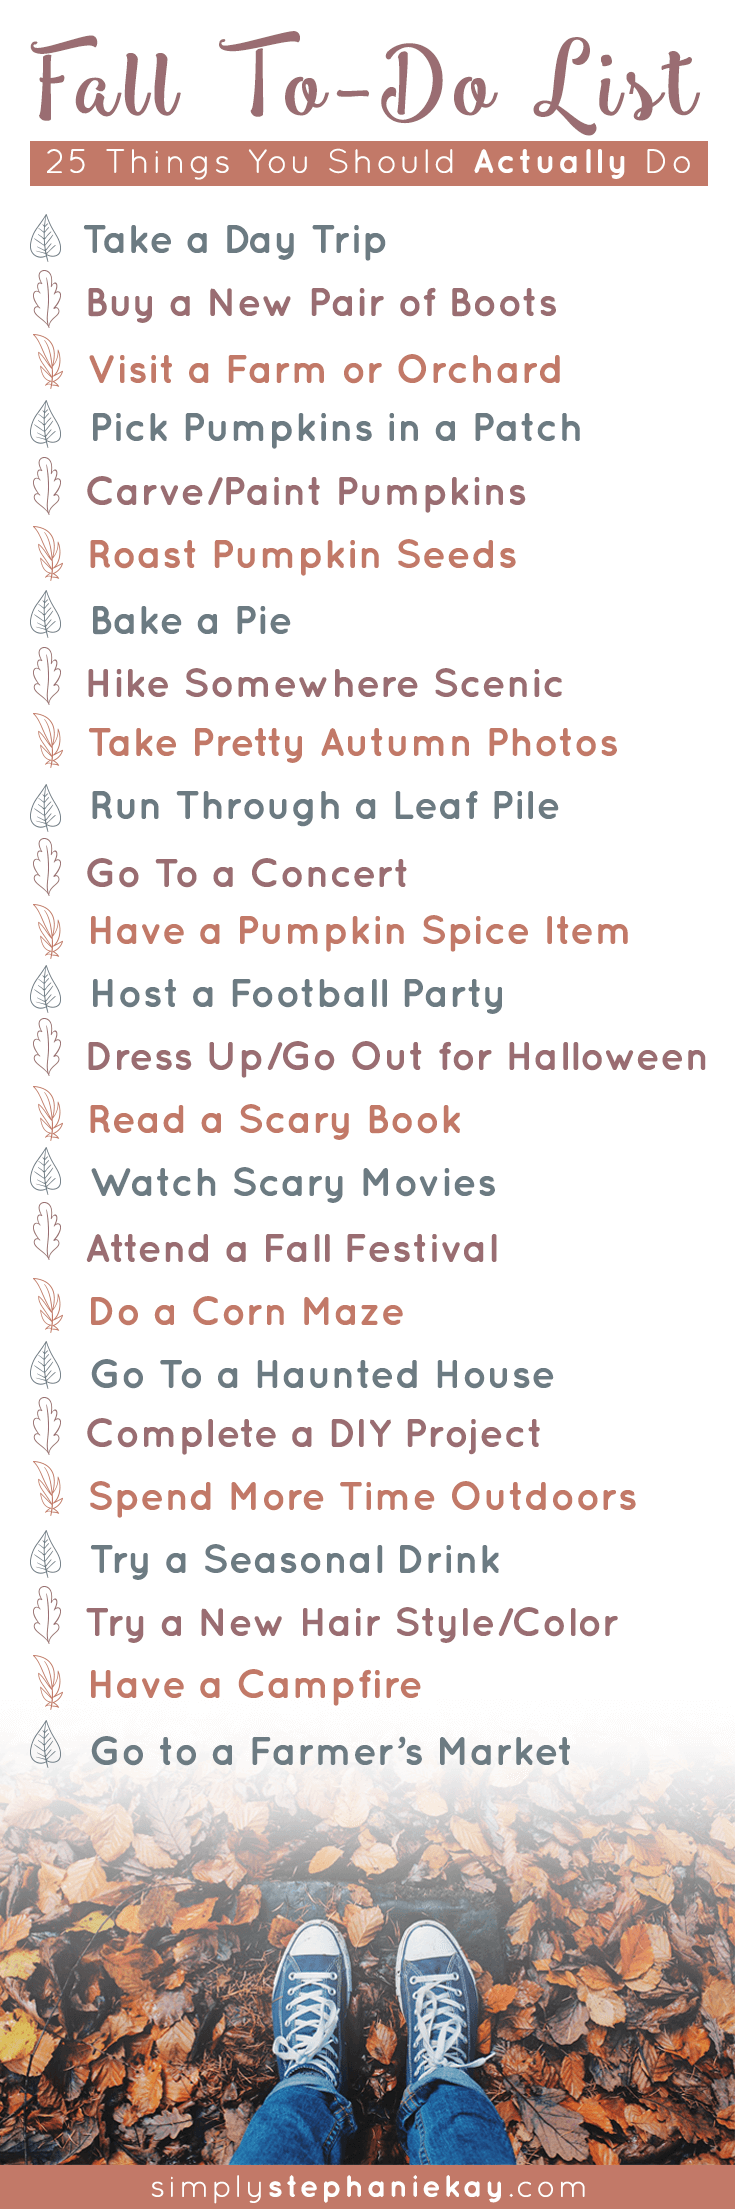 25 Things You Should Actually Do This Fall.